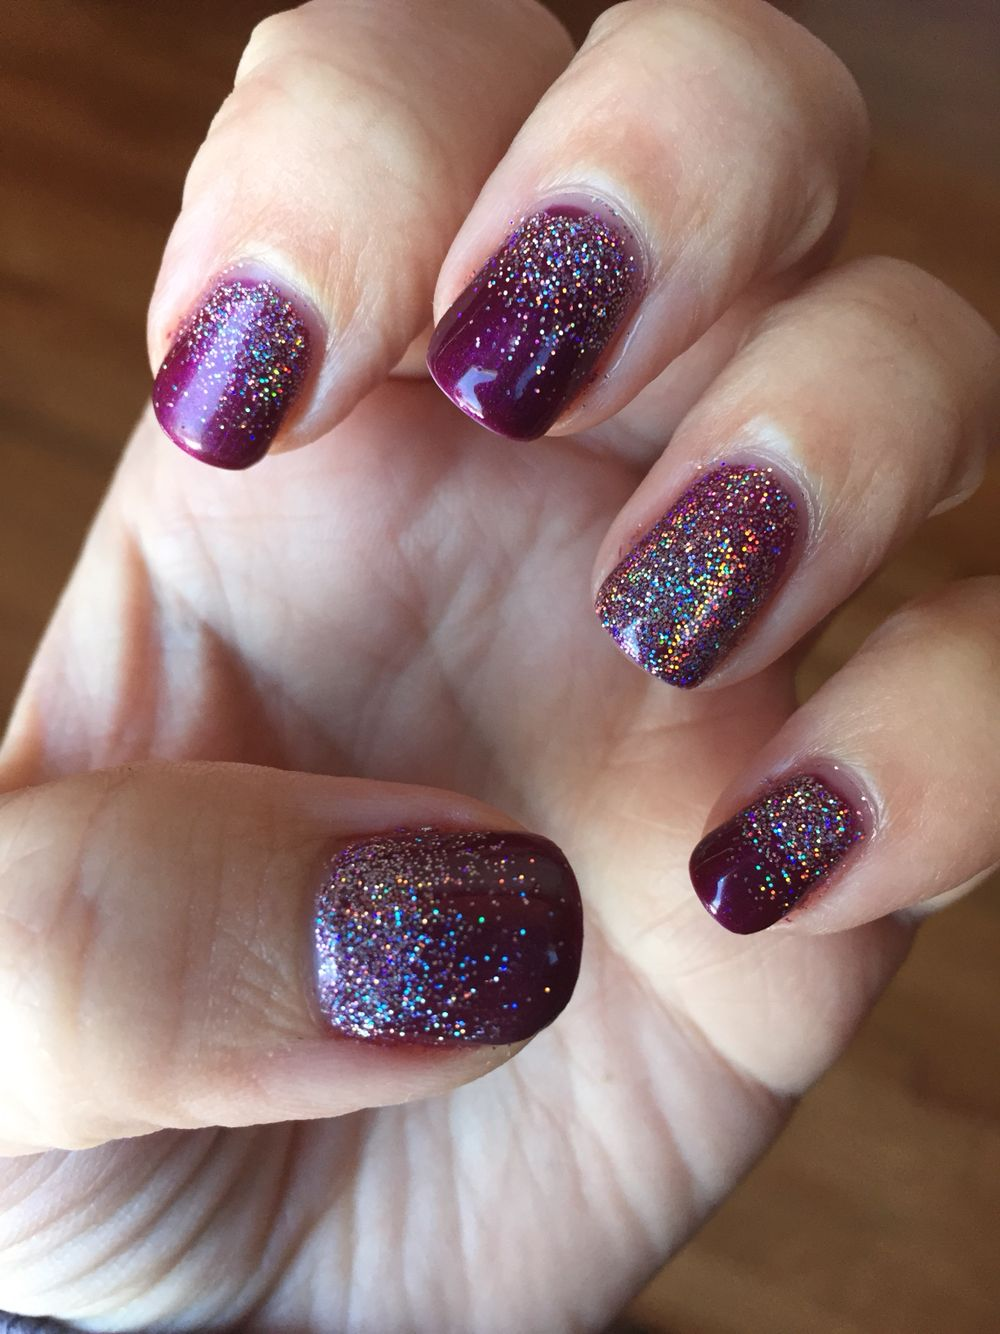 Cnd shellac tango passion with dream lilly glitter for A david anthony salon